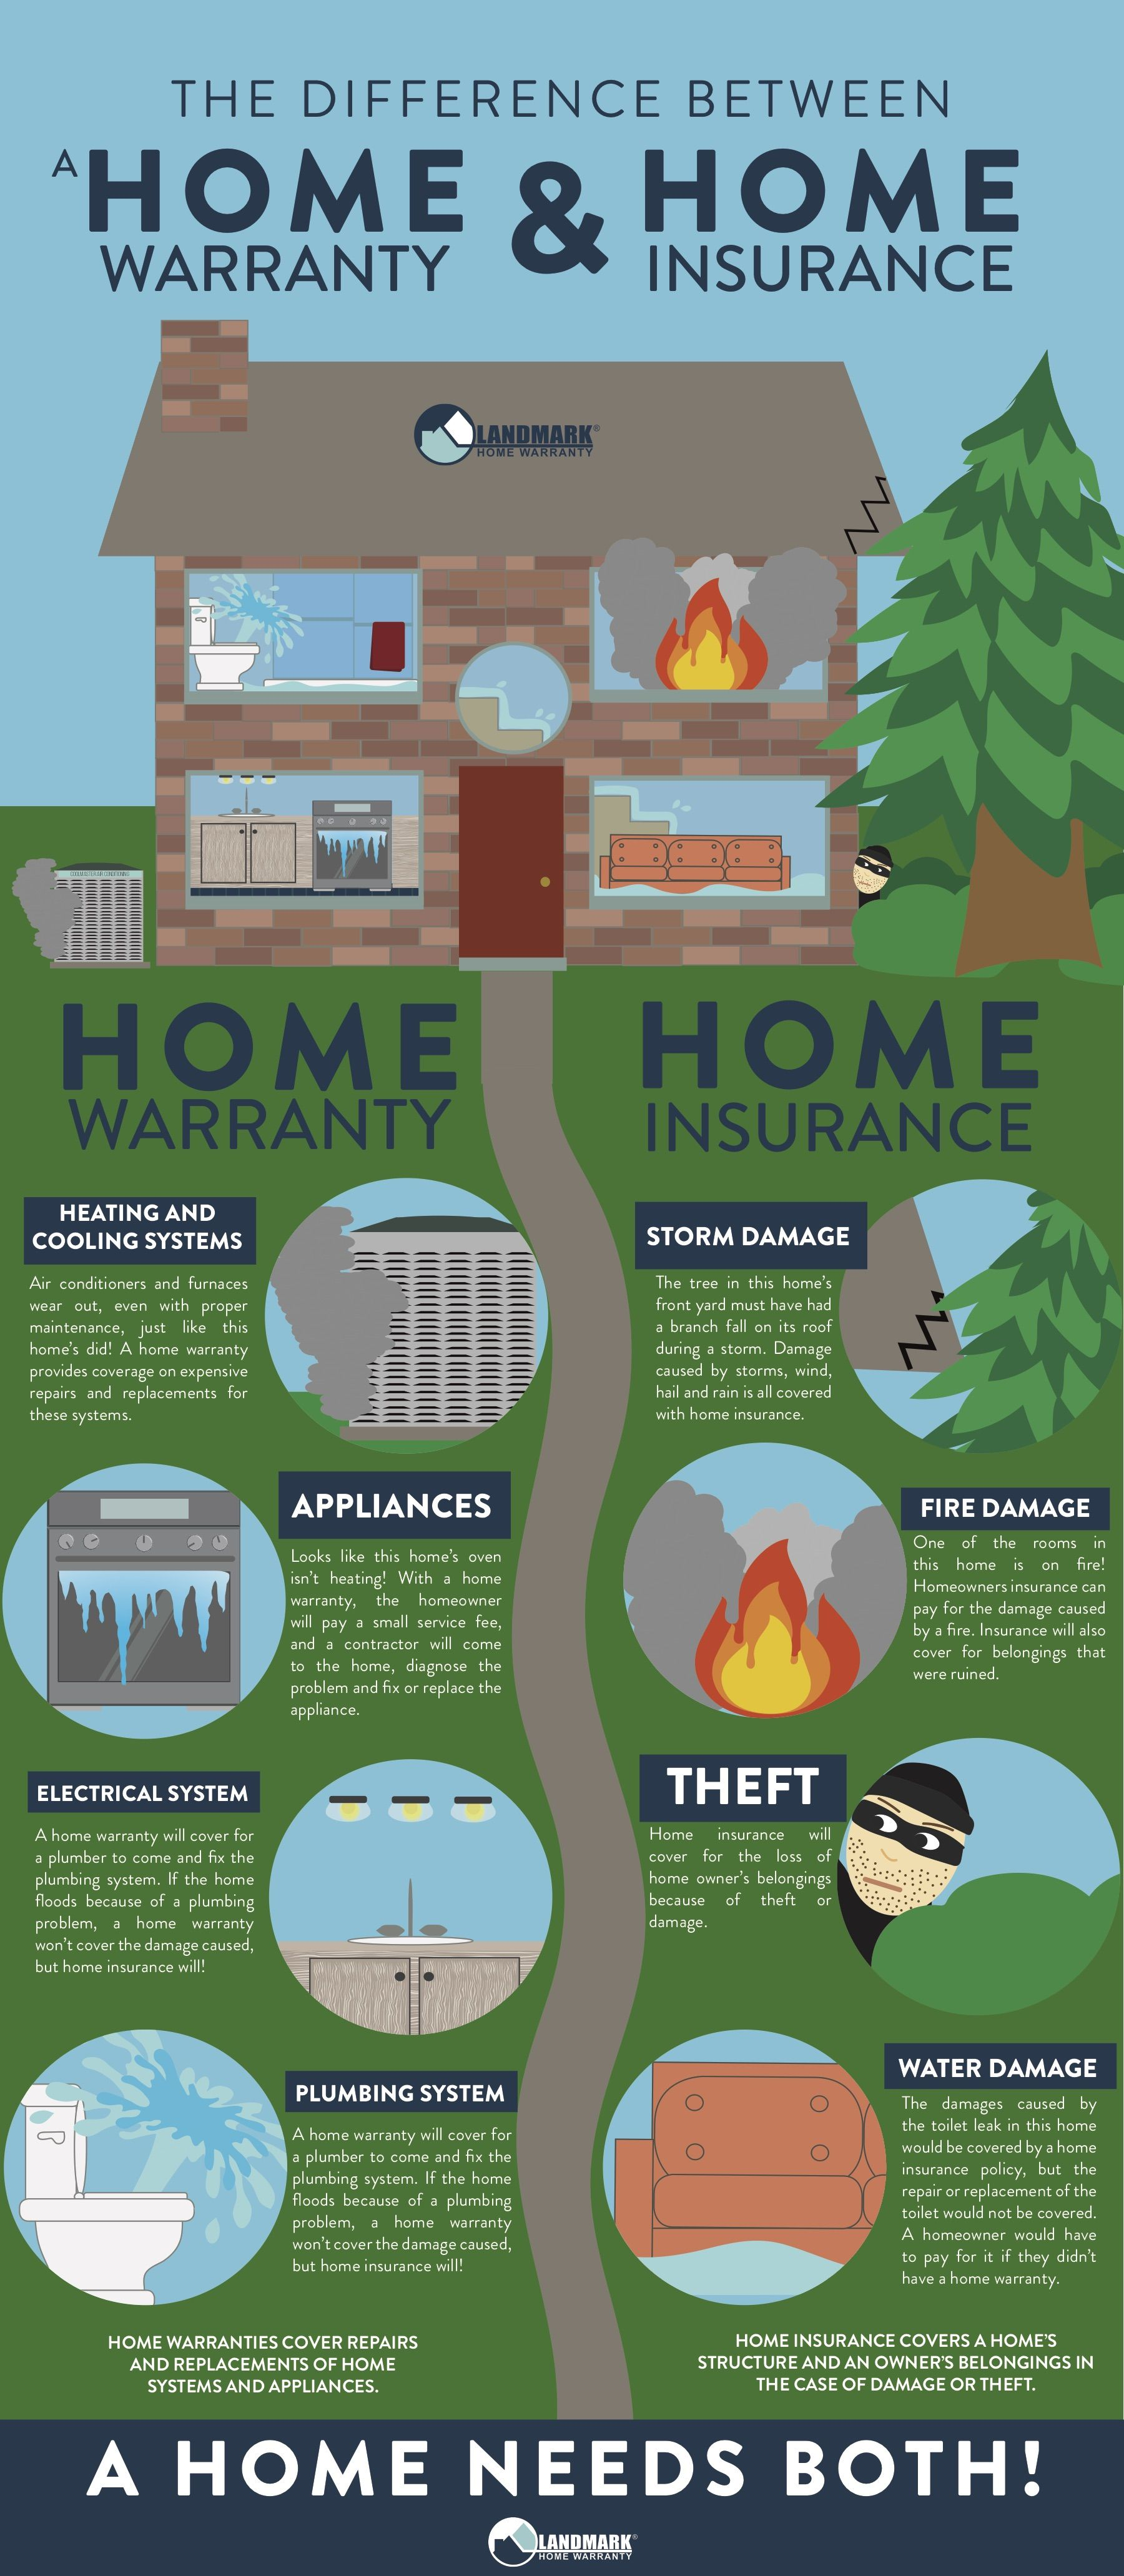 It Is Important To Maintain Home Insurance And Home Warranty For Unanticipated Expenses To Your Home Home Insurance Home Insurance Quotes Home Warranty